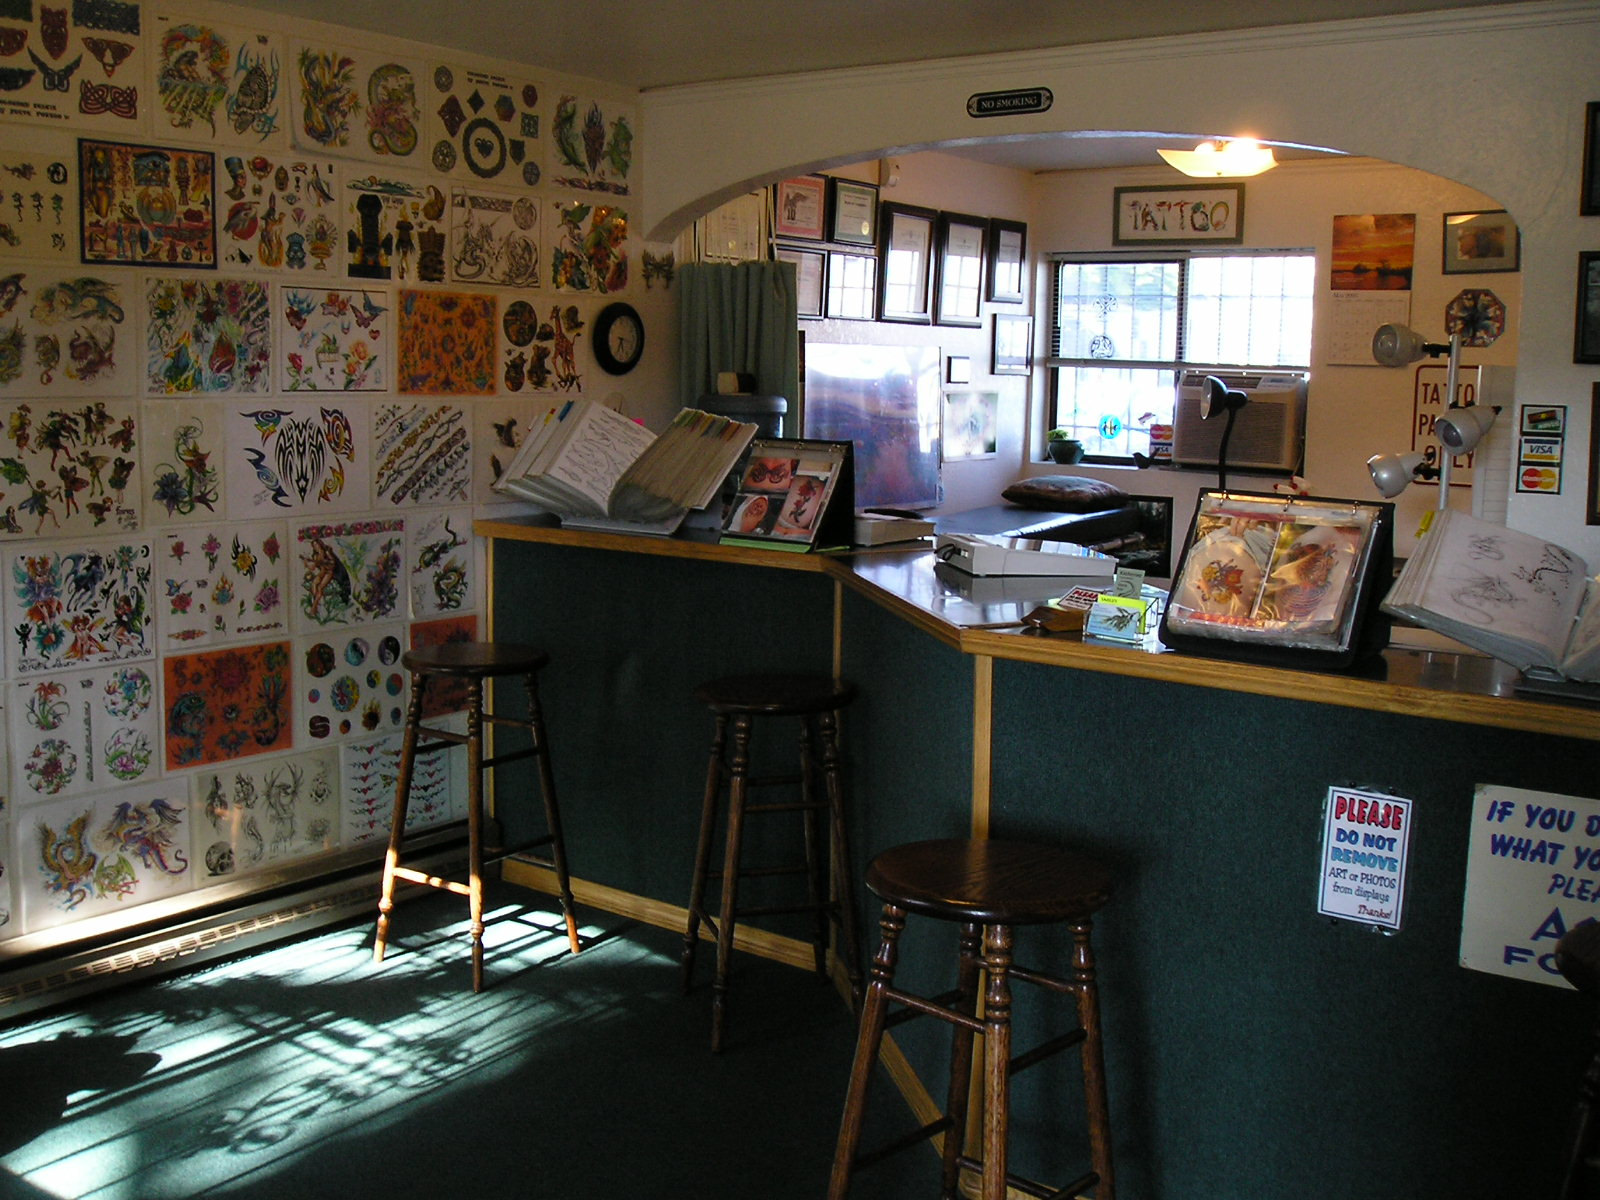 Tattoo Shop Design Ideas Tattoo designs are very